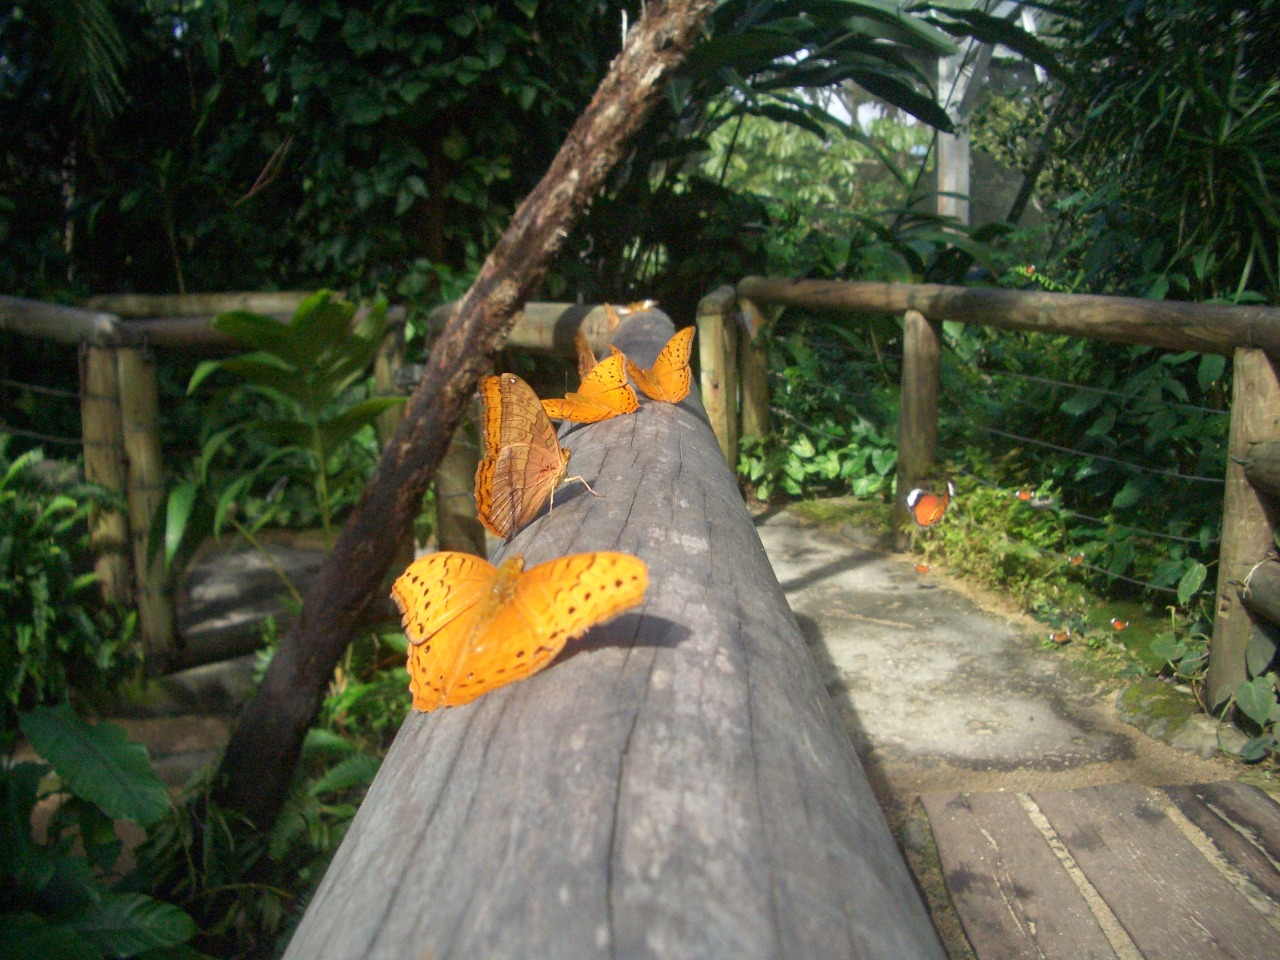 Australian Butterfly Sanctuary Kuranda, Cairns Attractions | Australian Butterfly Sanctuary